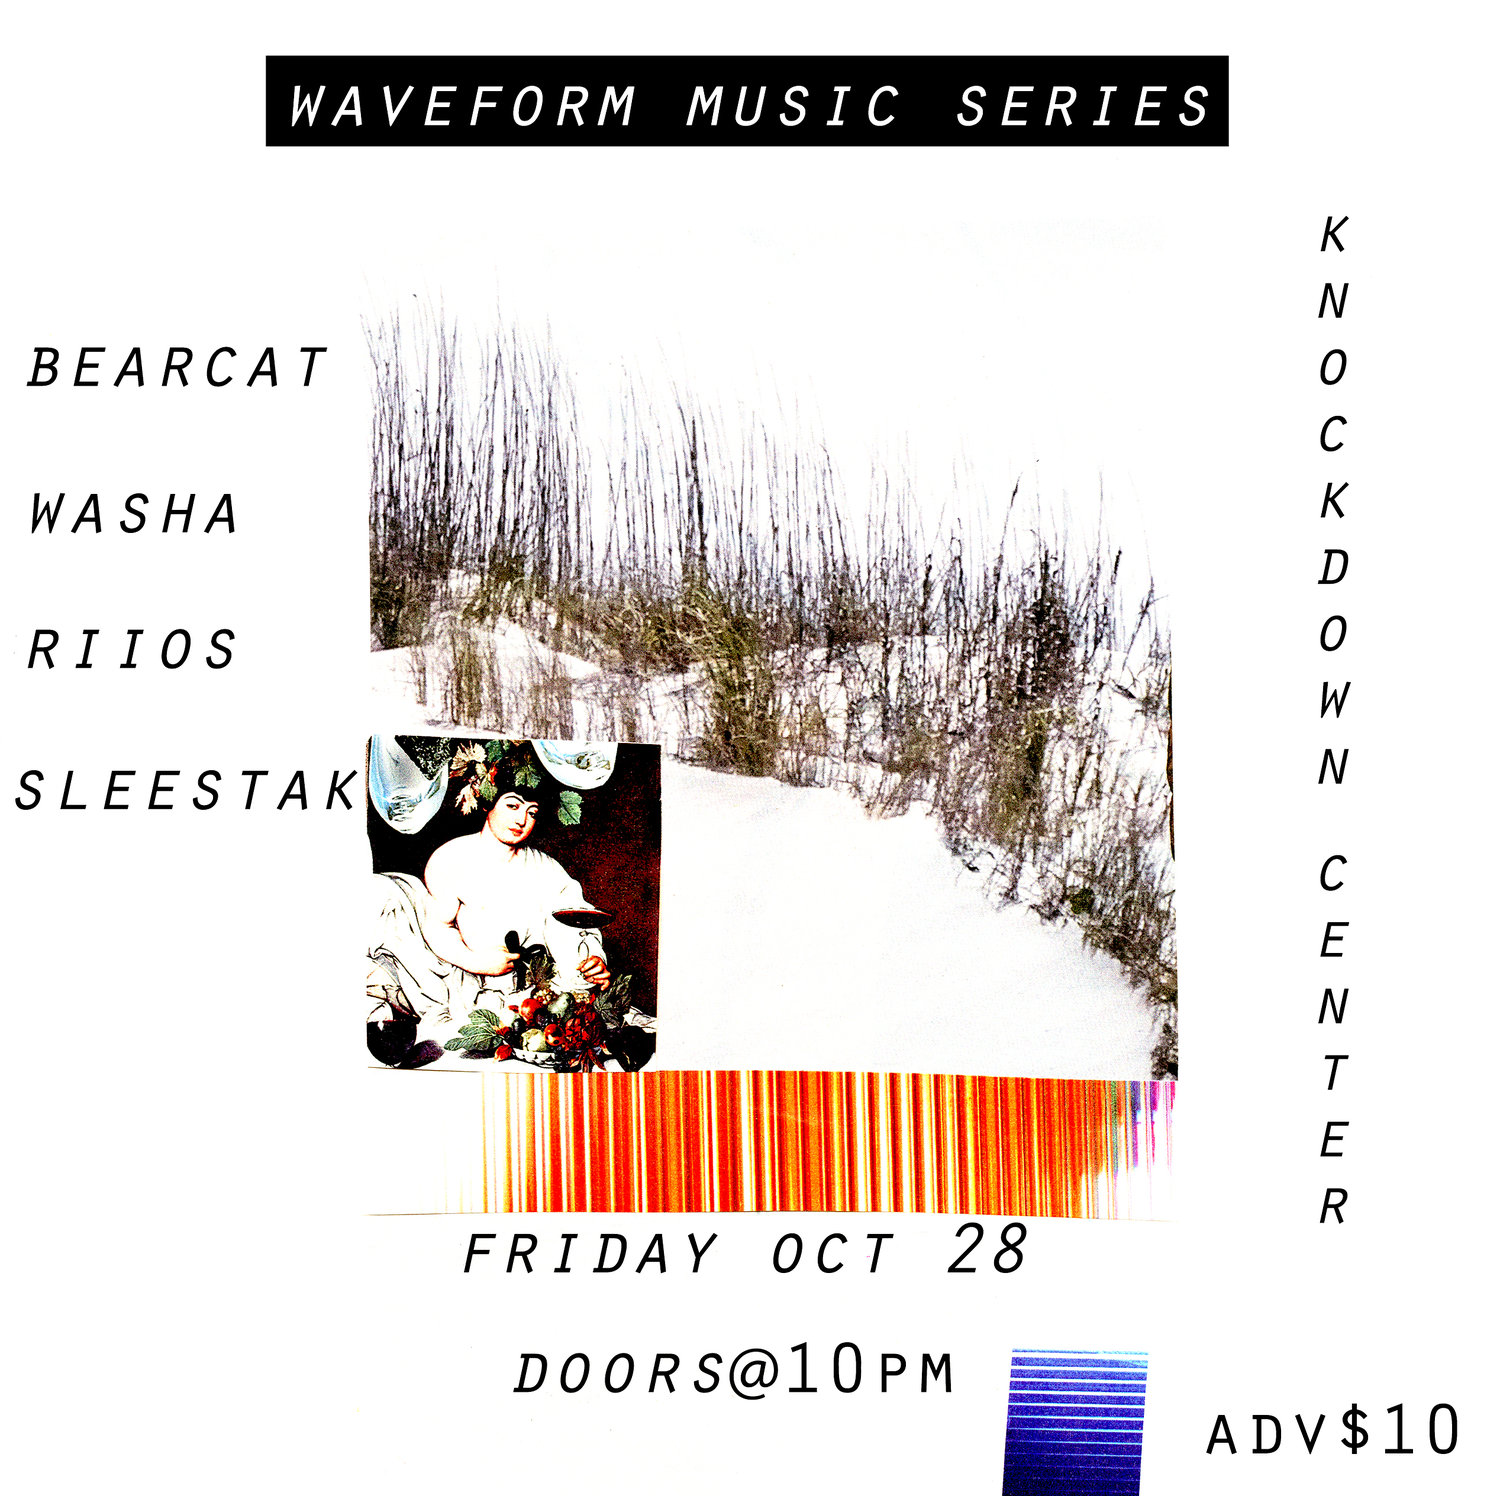 Waveform Music Series Continues Next Friday At Knockdown Center